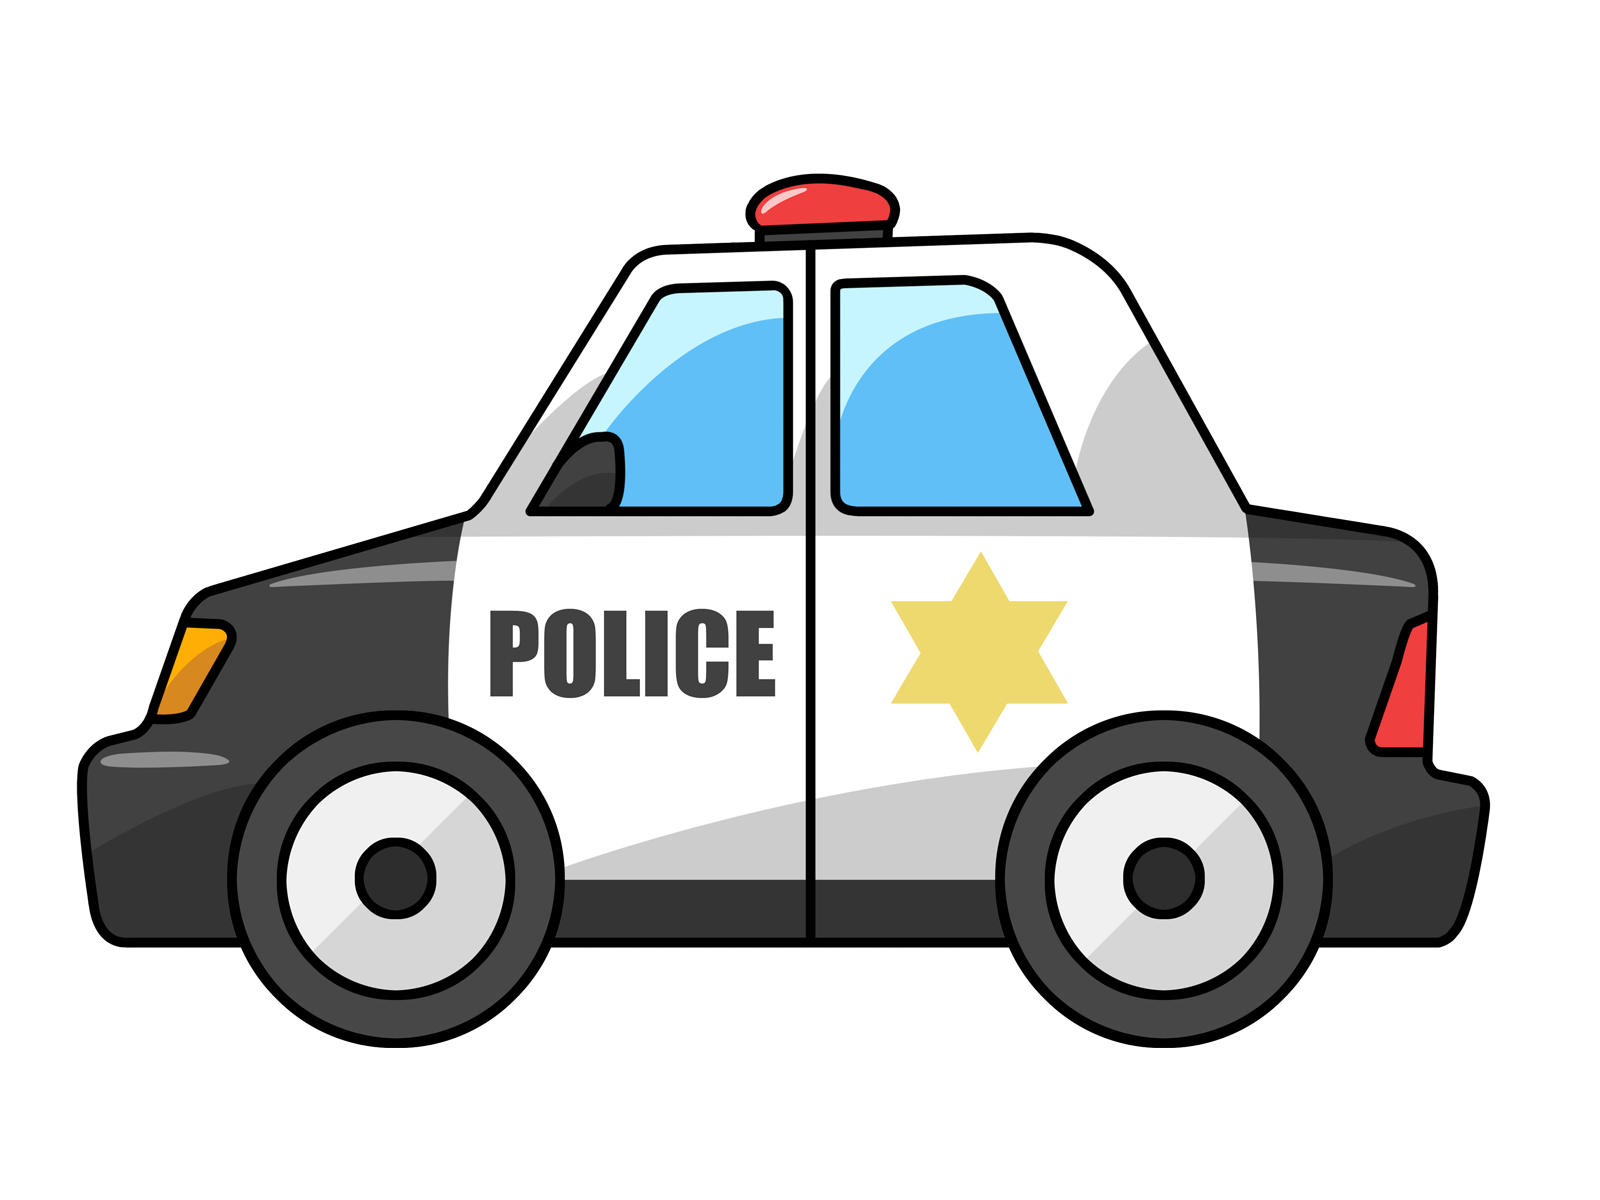 Clipartlord Com Exclusive You Can Use This Cute Cartoon Police Car